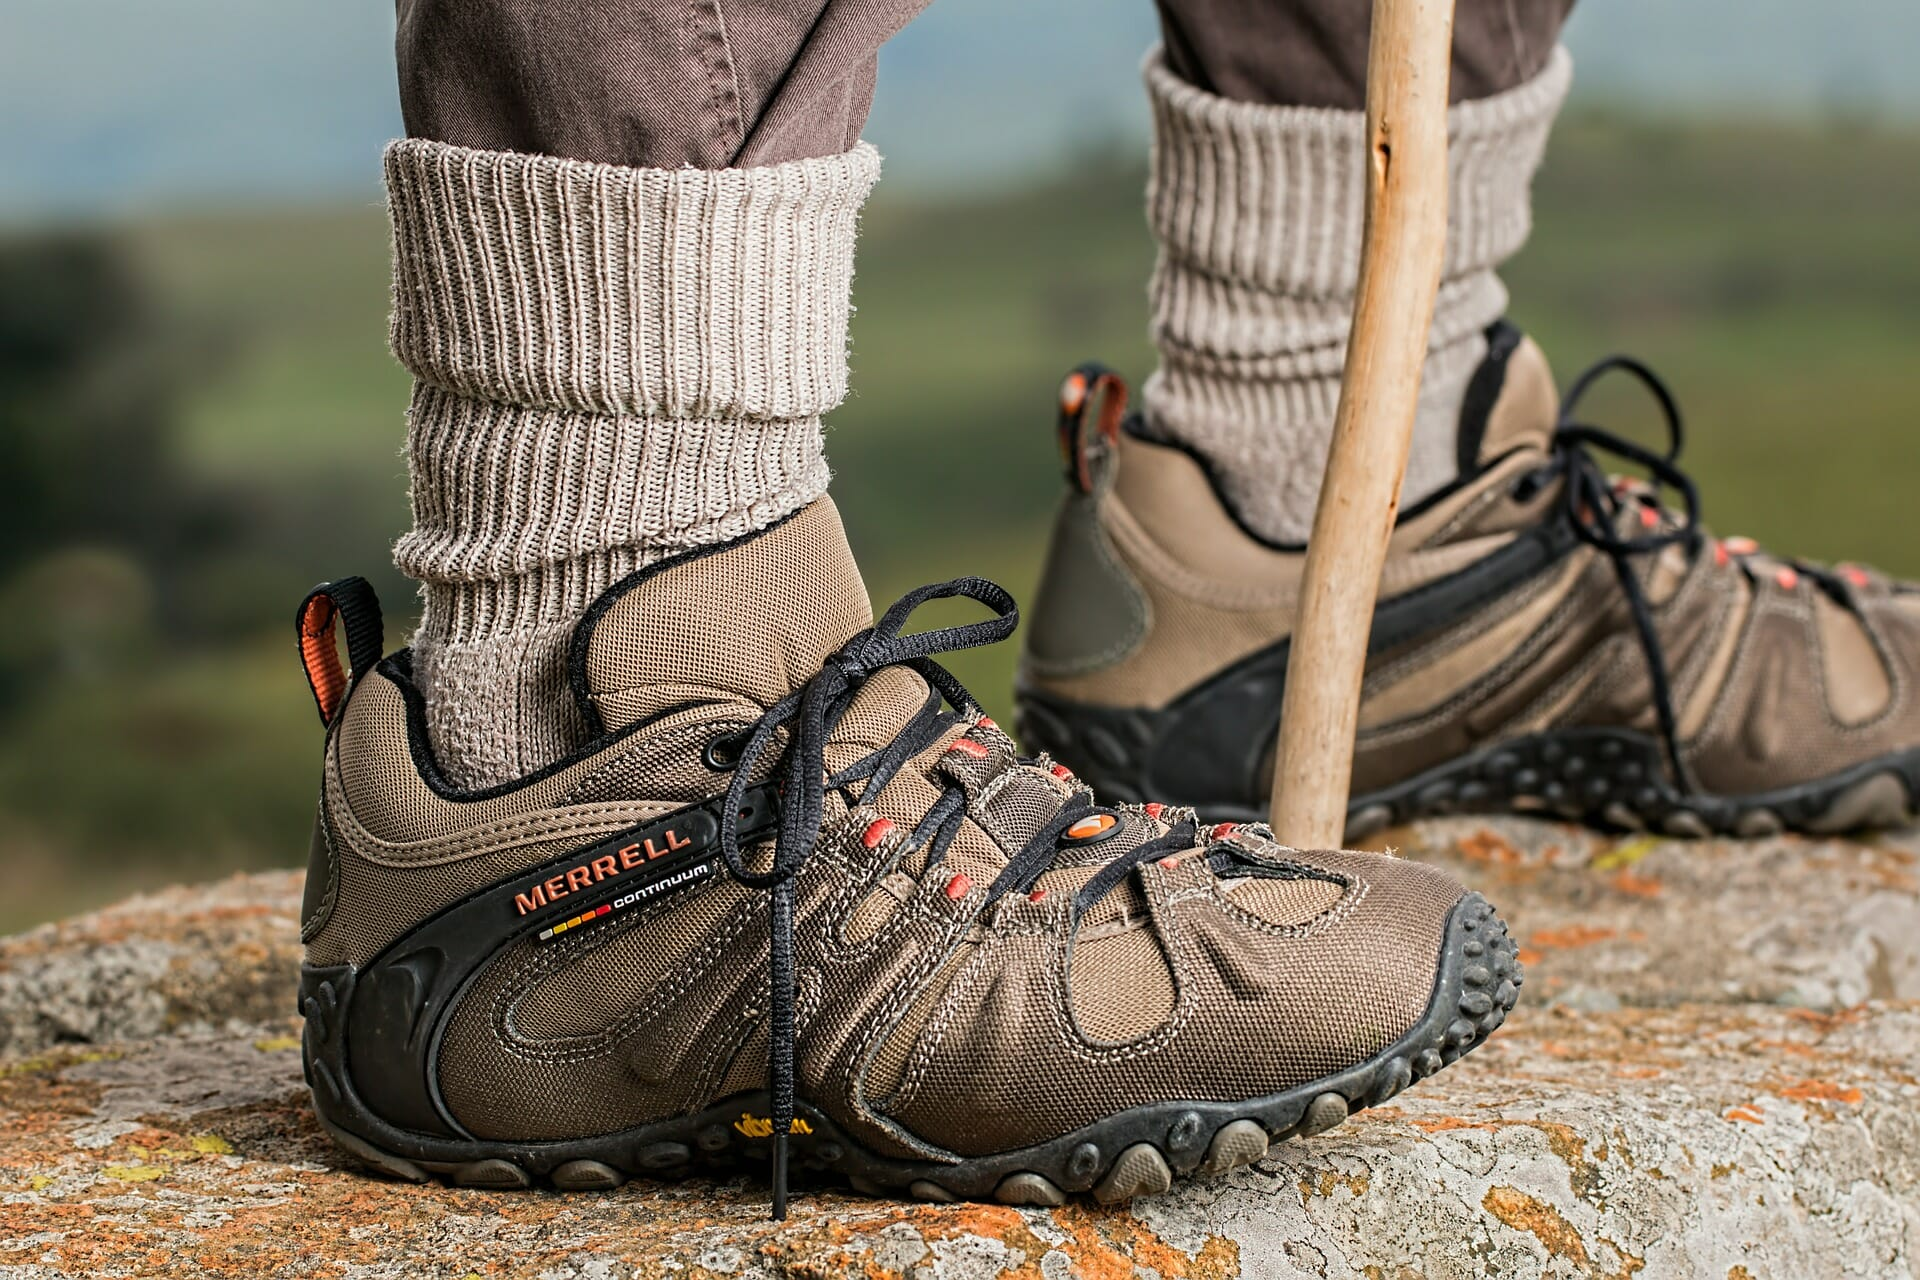 Mid-Size hiking shoes